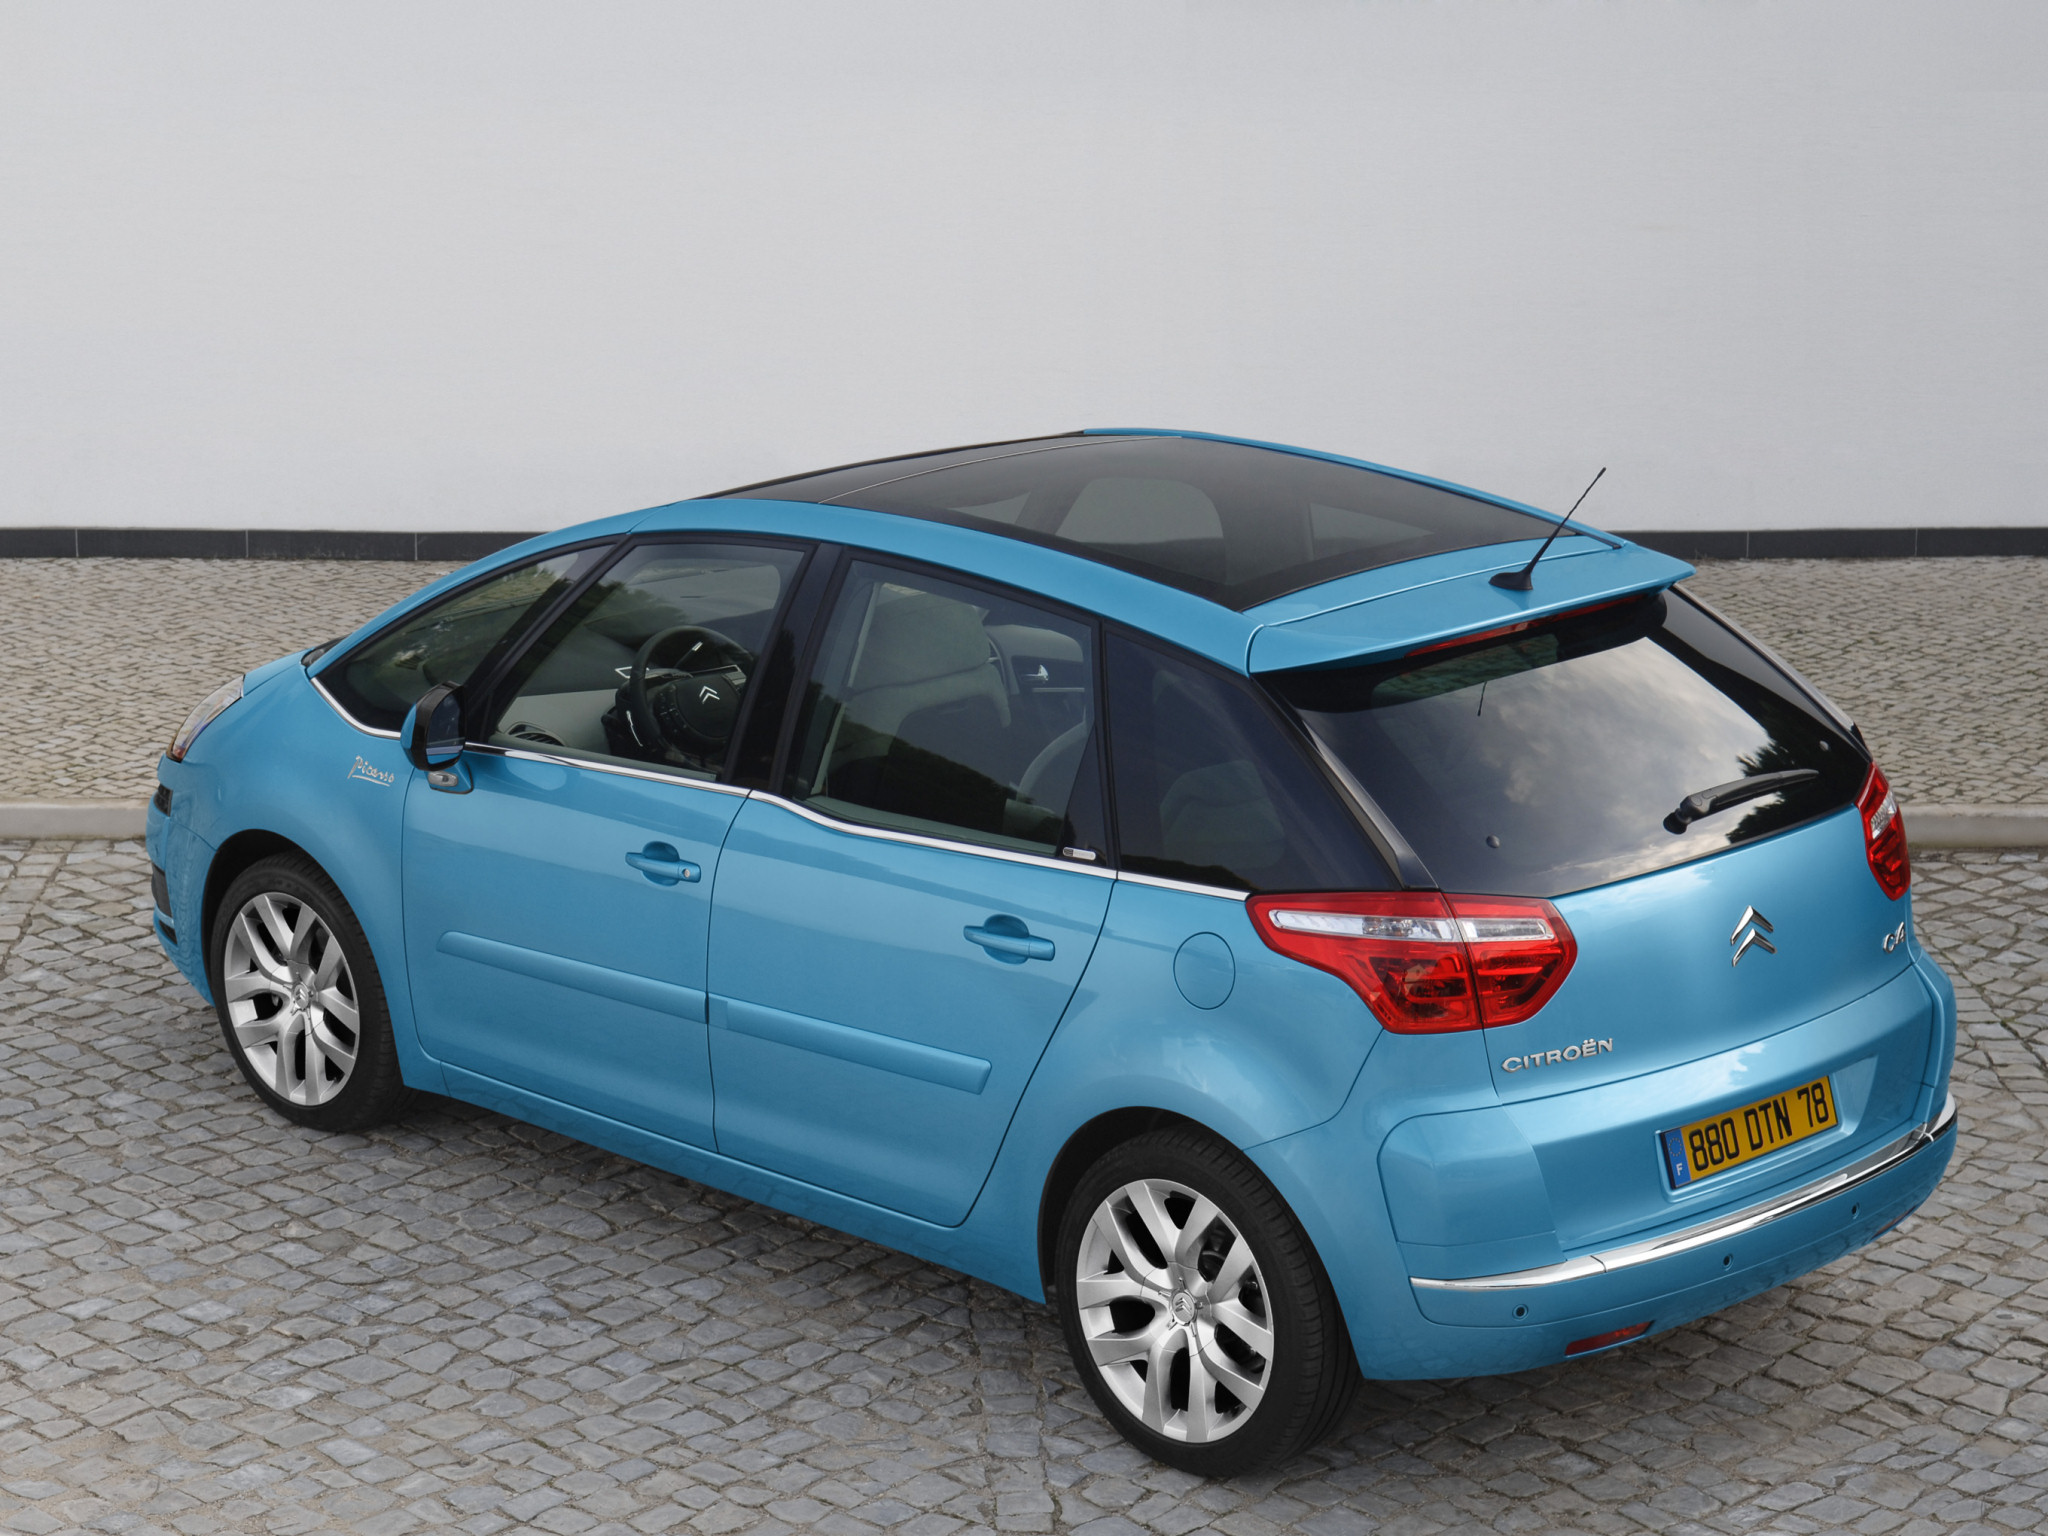 citroen c4 picasso 5 seater 2007 citroen c4 picasso 5 seater 2007 photo 18 car in pictures. Black Bedroom Furniture Sets. Home Design Ideas